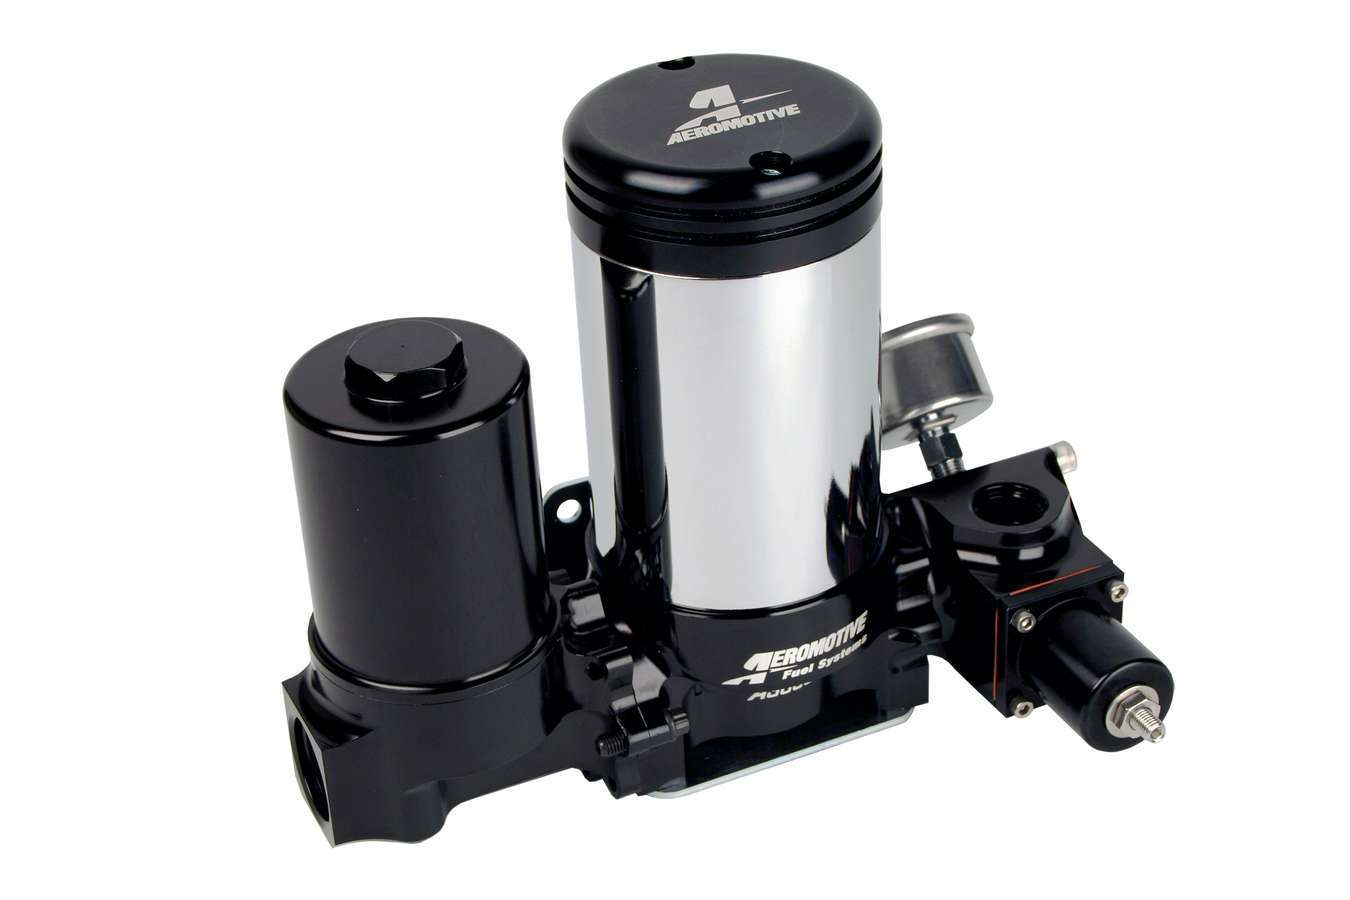 Aeromotive 11215 Fuel Pump, A3000, Electric, In-Line, 408 gph at 30 psi, 12 AN Inlet, 10 AN Outlet, Black, Regulator / Fuel Filter, E85 / Gas / Diesel, Each